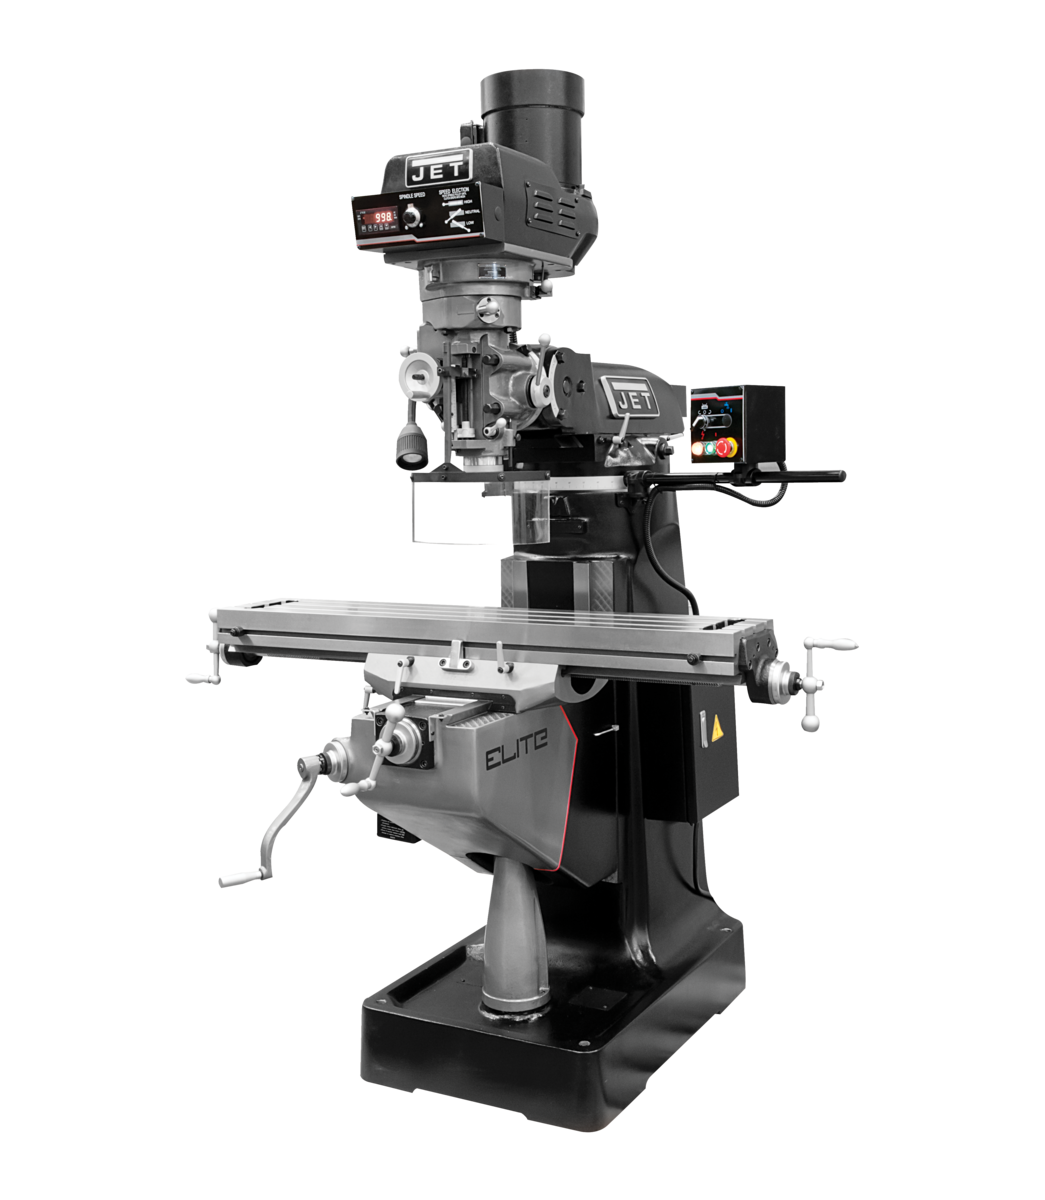 EVS-949 Mill with 3-Axis ACU-RITE 303 (Quill) DRO